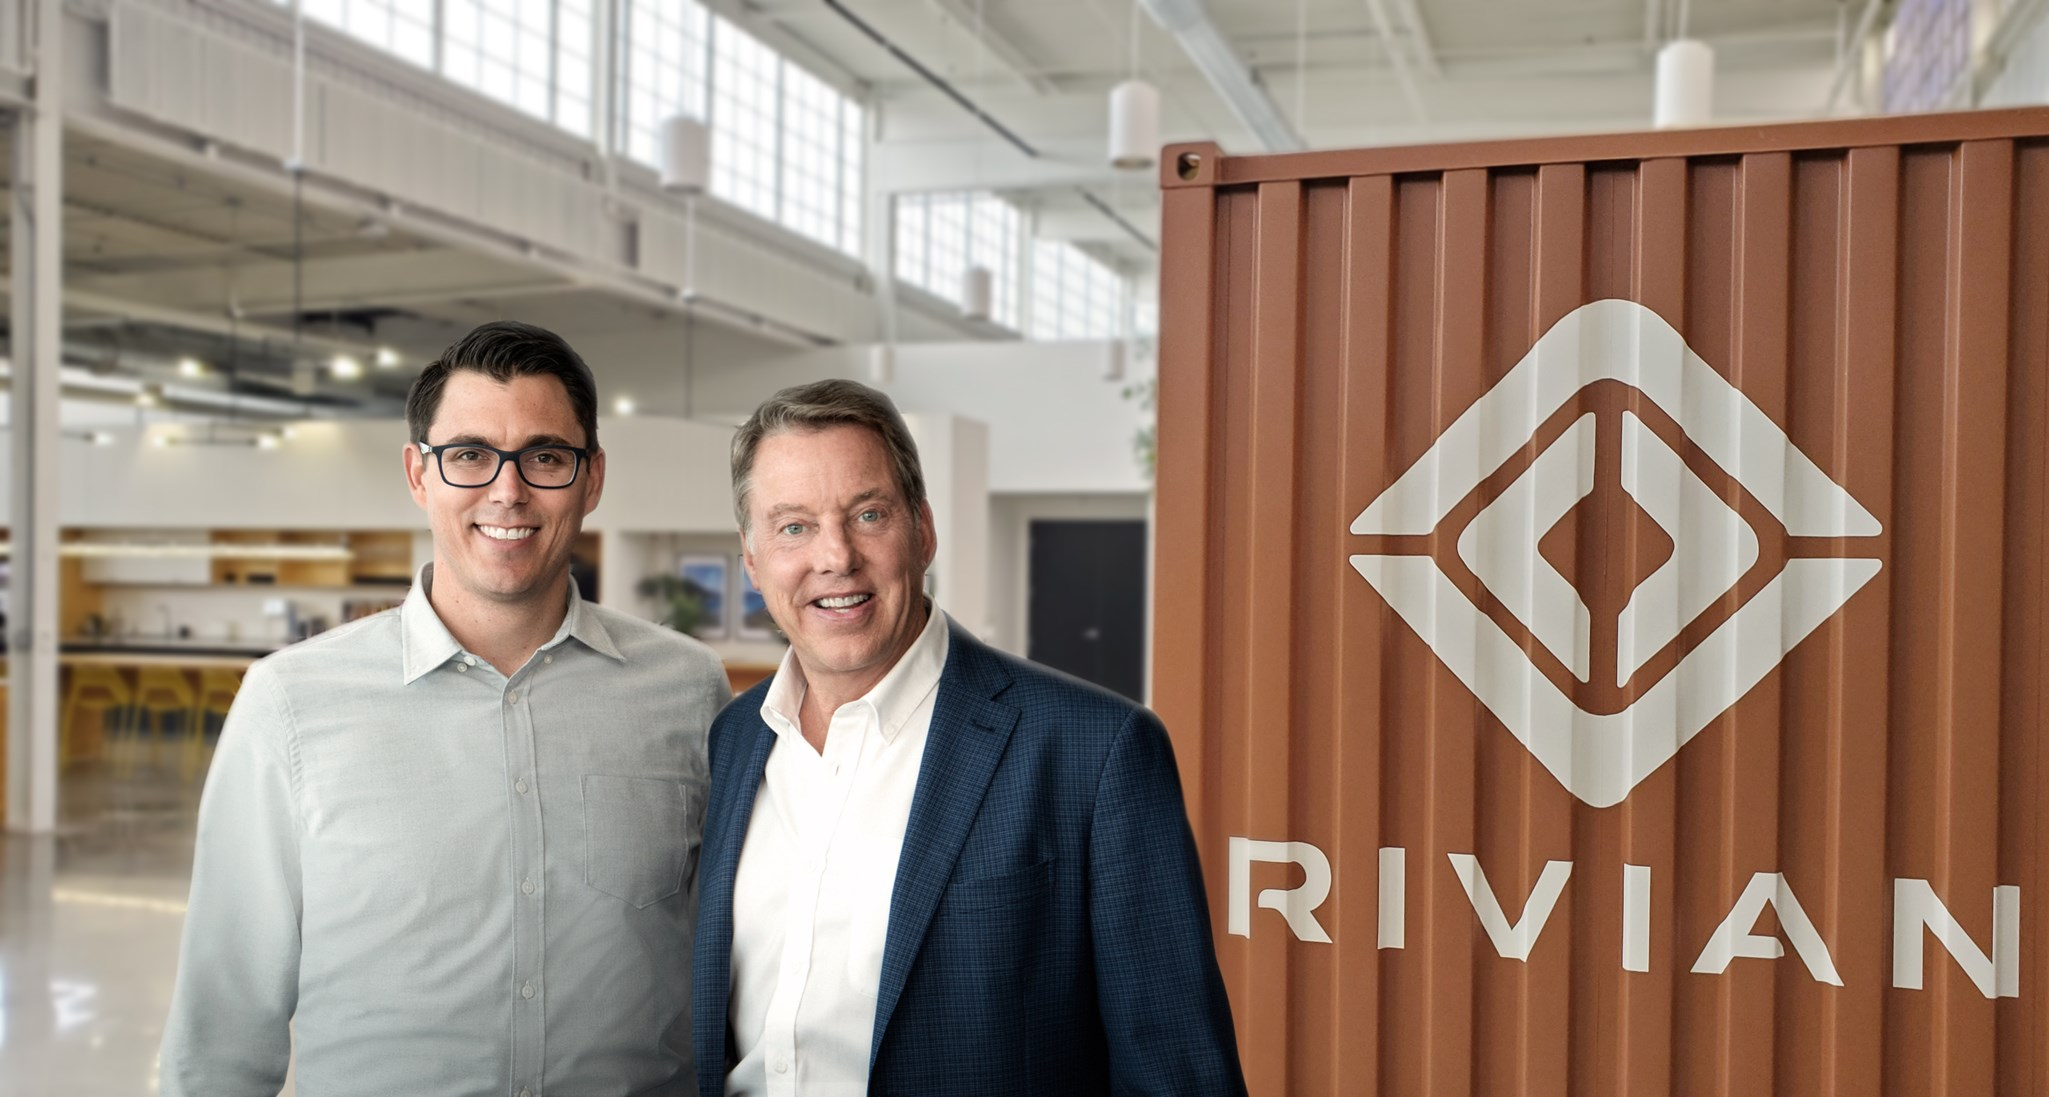 Ford electric vehicle: Ford invests $500 million into Tesla competitor Rivian